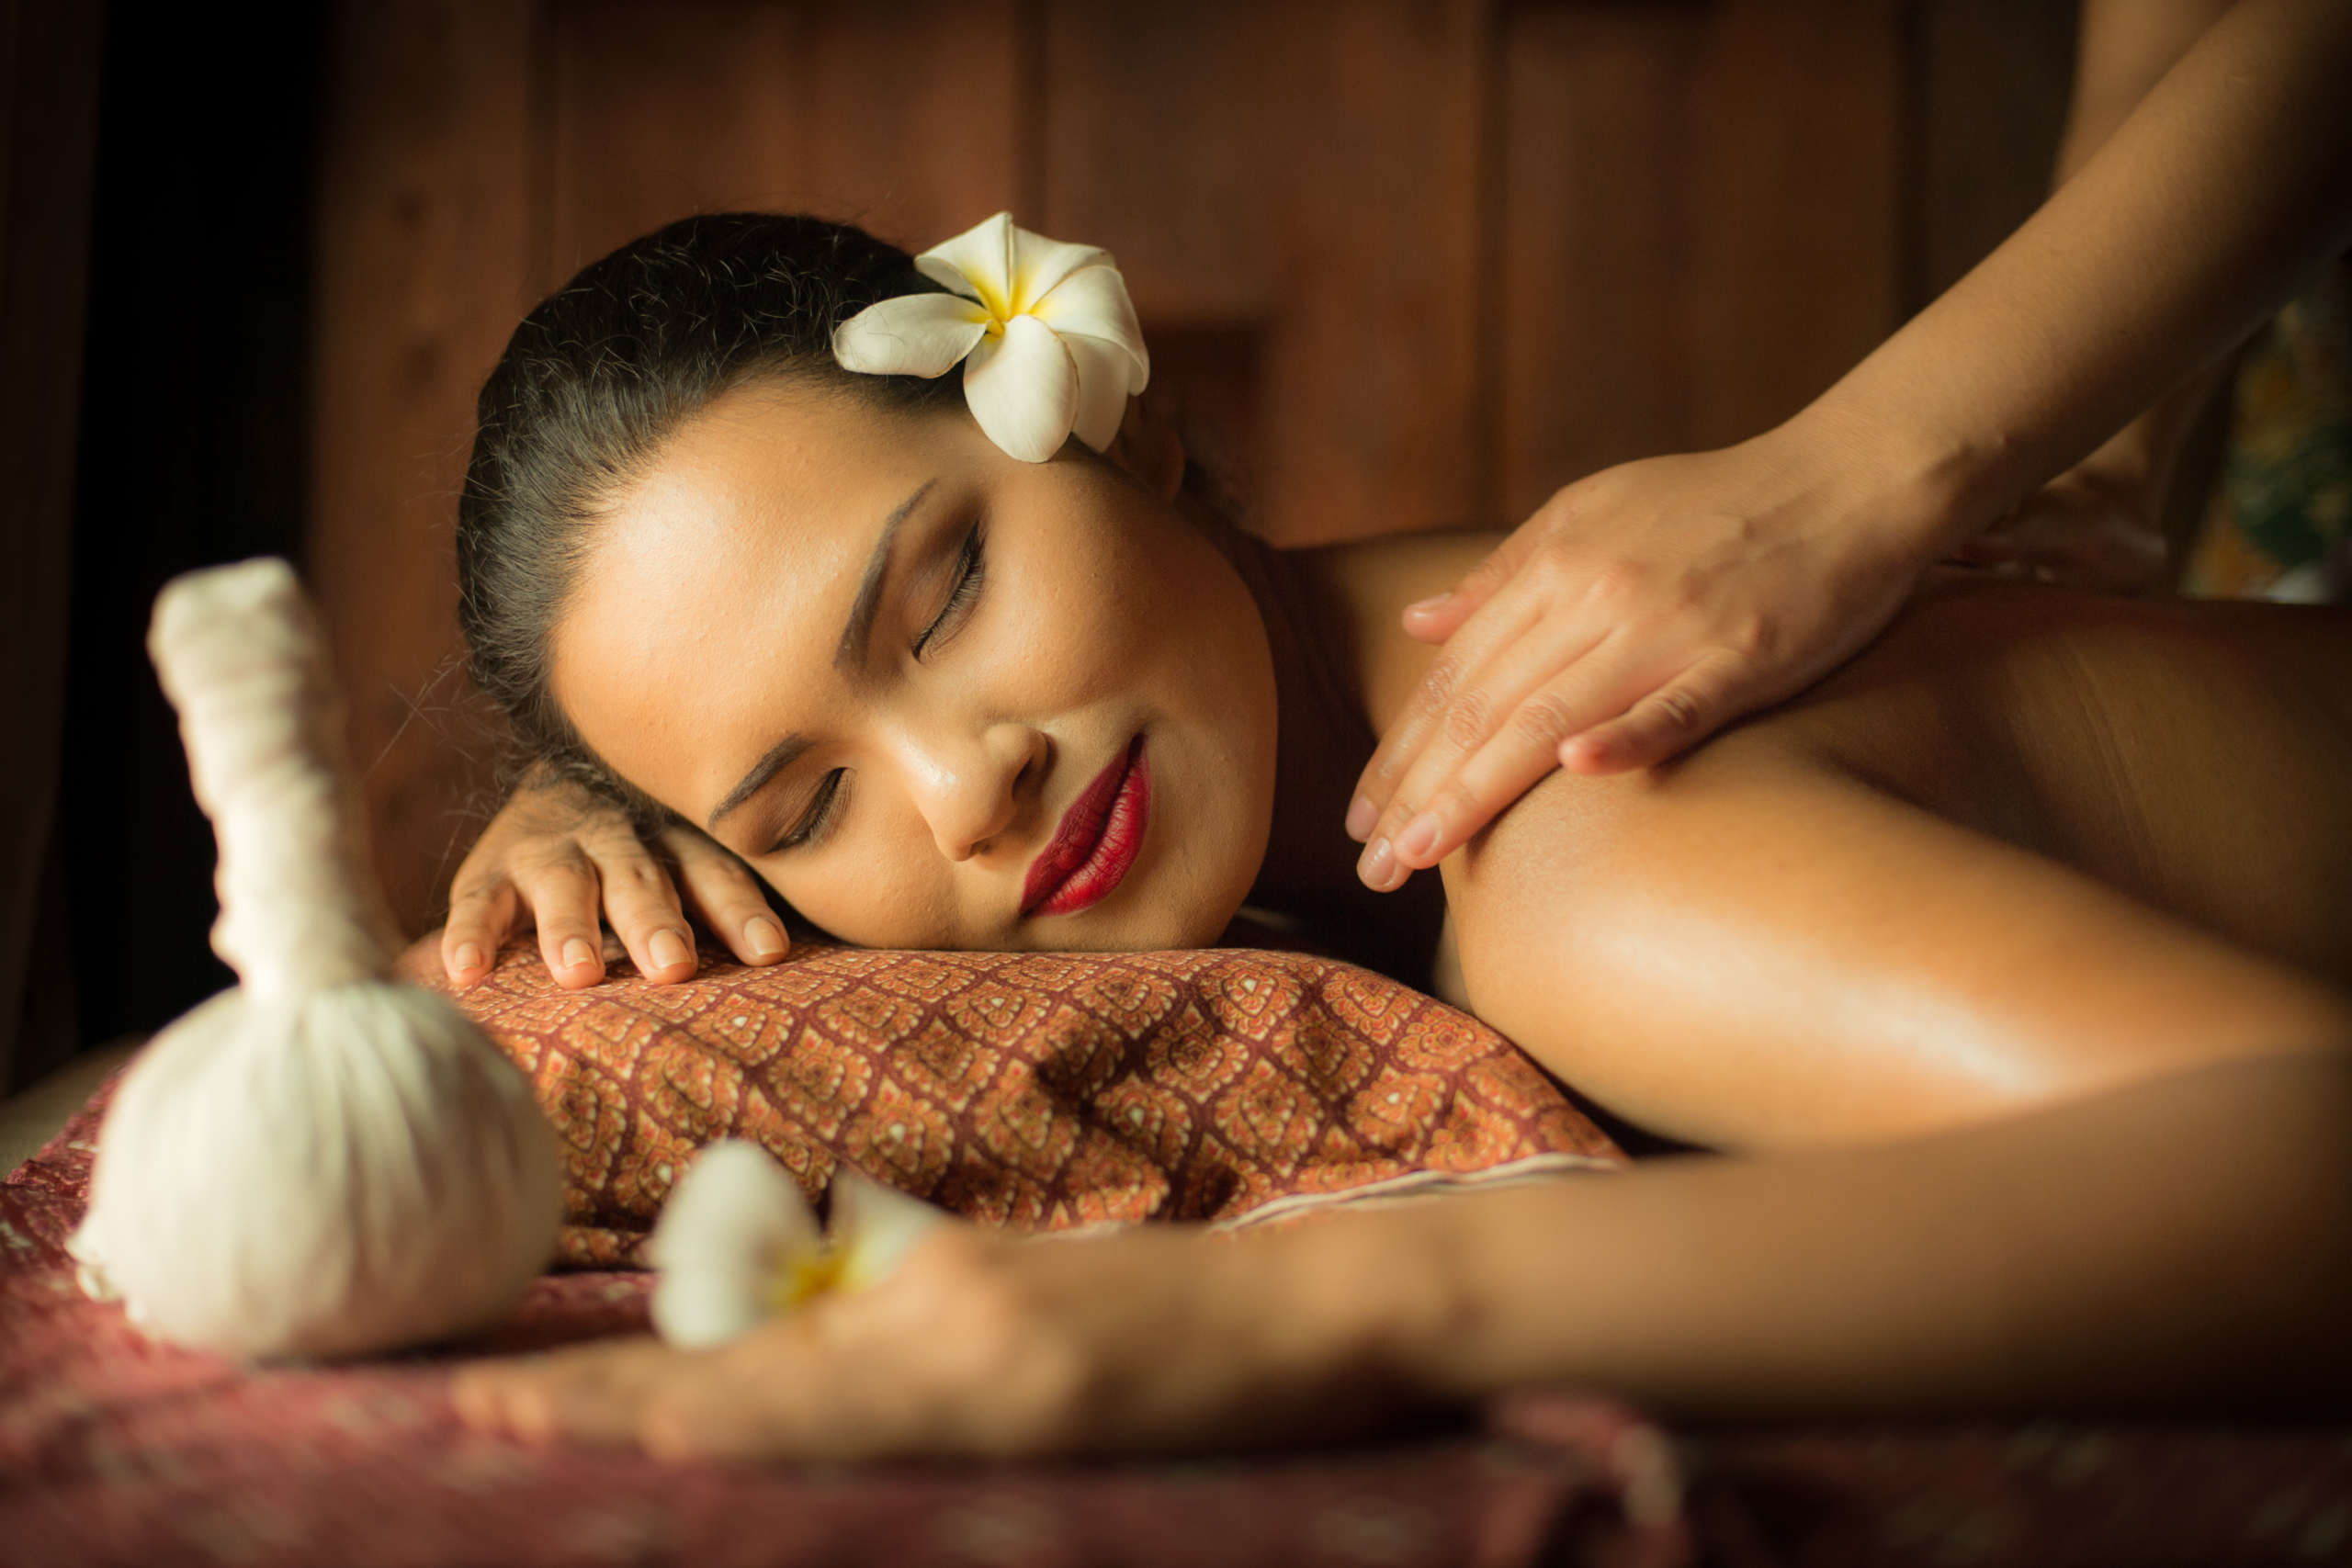 massage on woman body in the spa